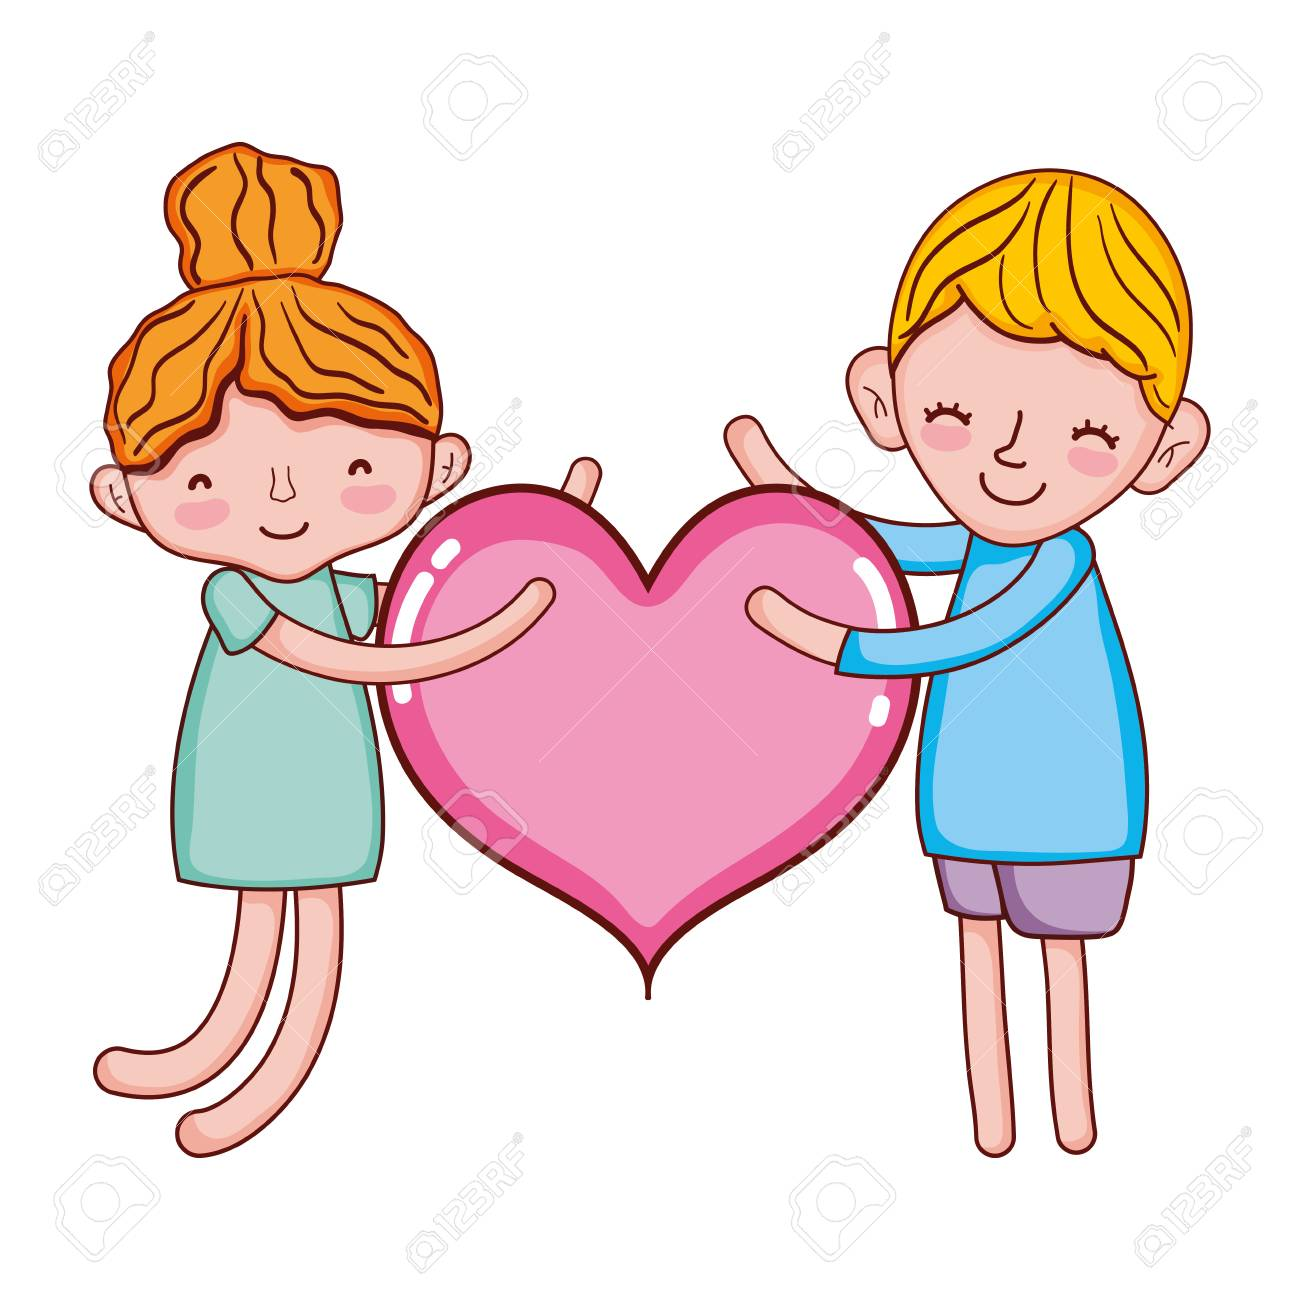 Boy And Girl Sleeping With Fashion Heart Stock Photo Picture And